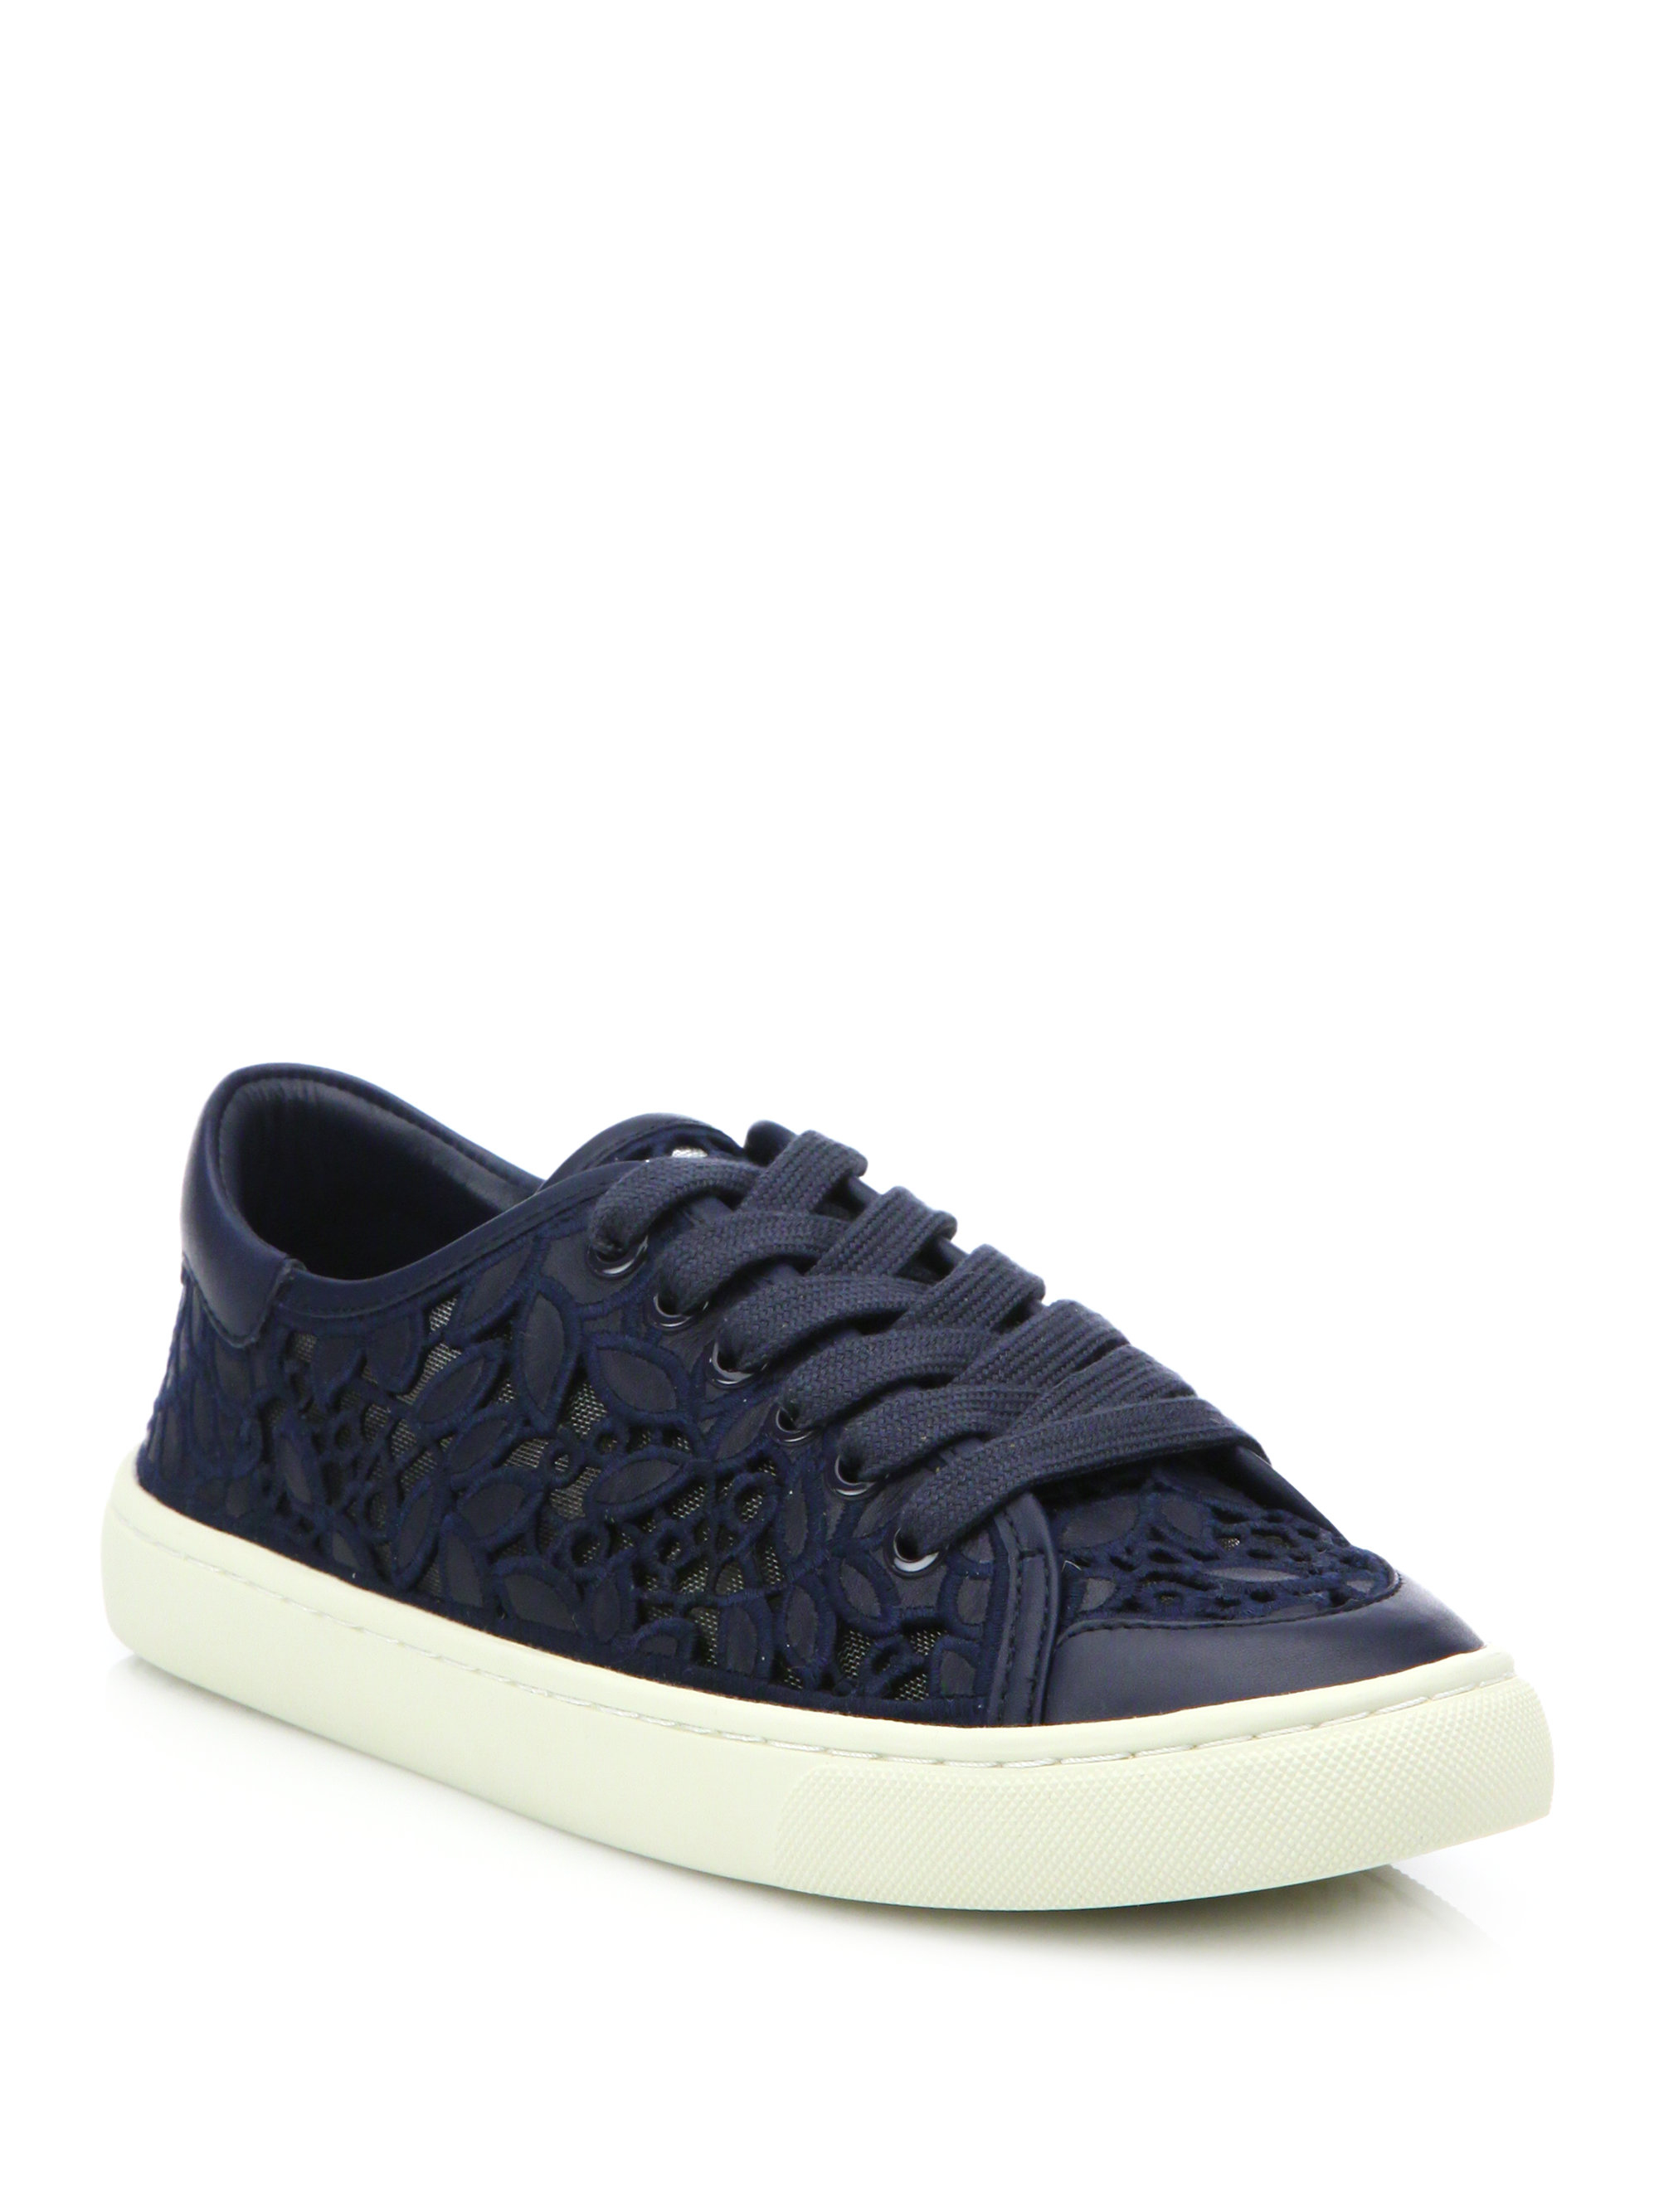 4e3db0a84d7 Lyst - Tory Burch Rhea Embroidered Lace-up Sneakers in Blue